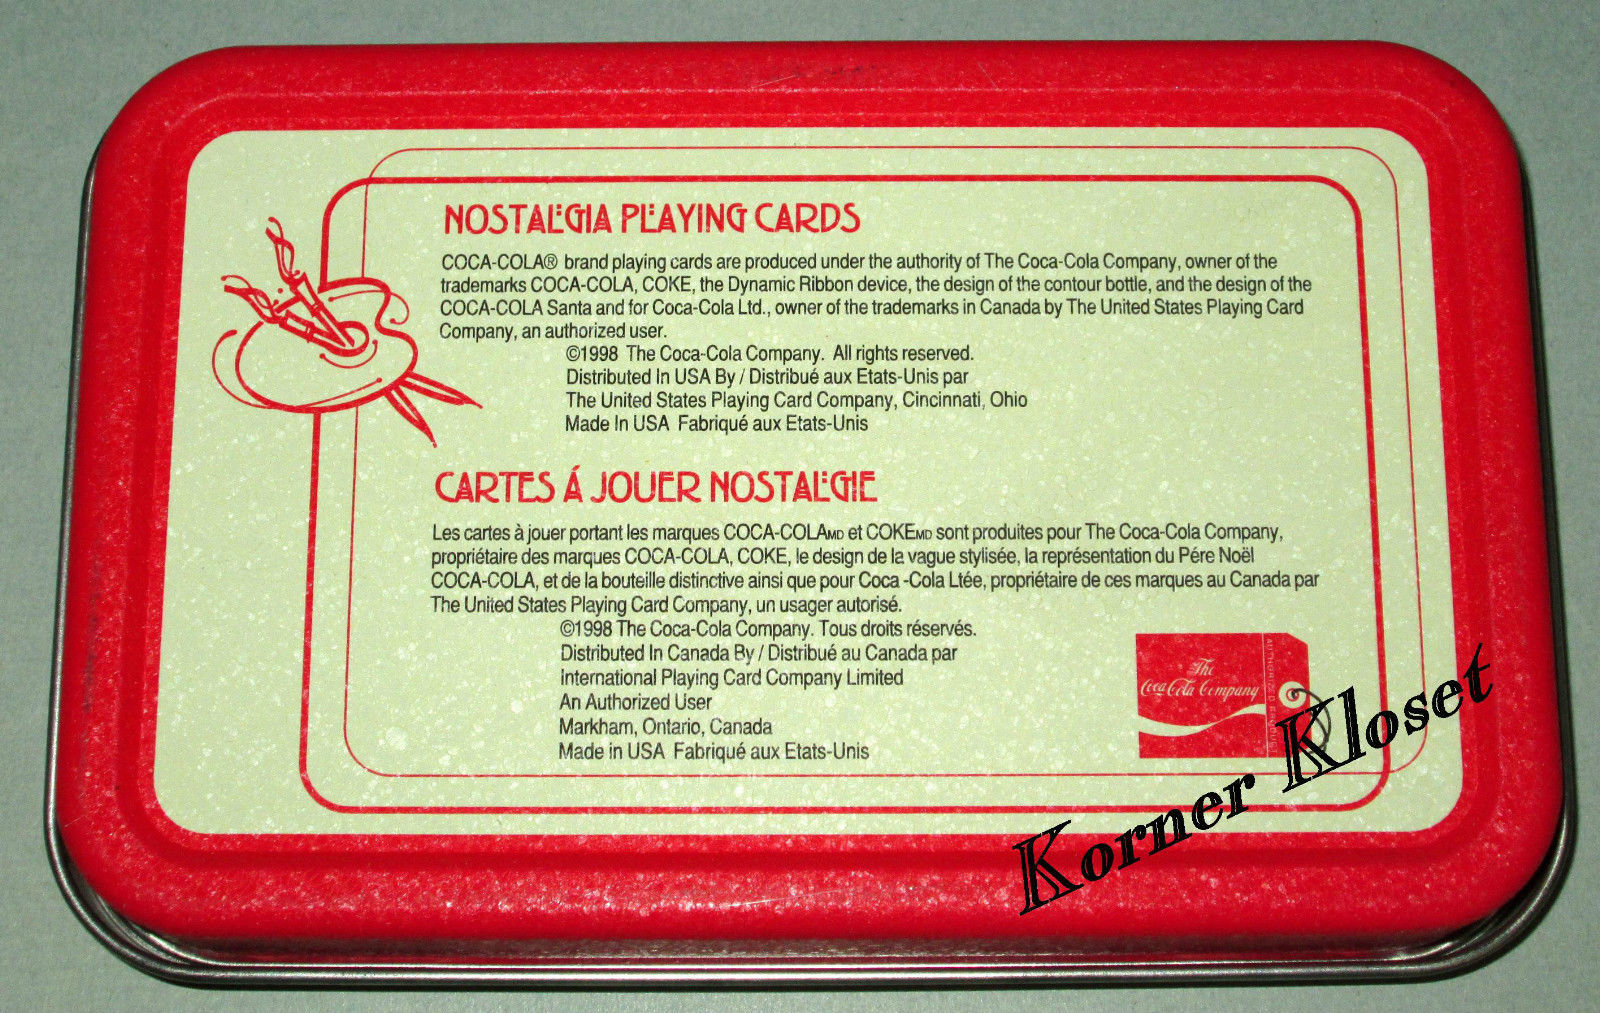 Coca-Cola Christmas Holiday Playing Cards - Decks of Coke Cards In Tin - New